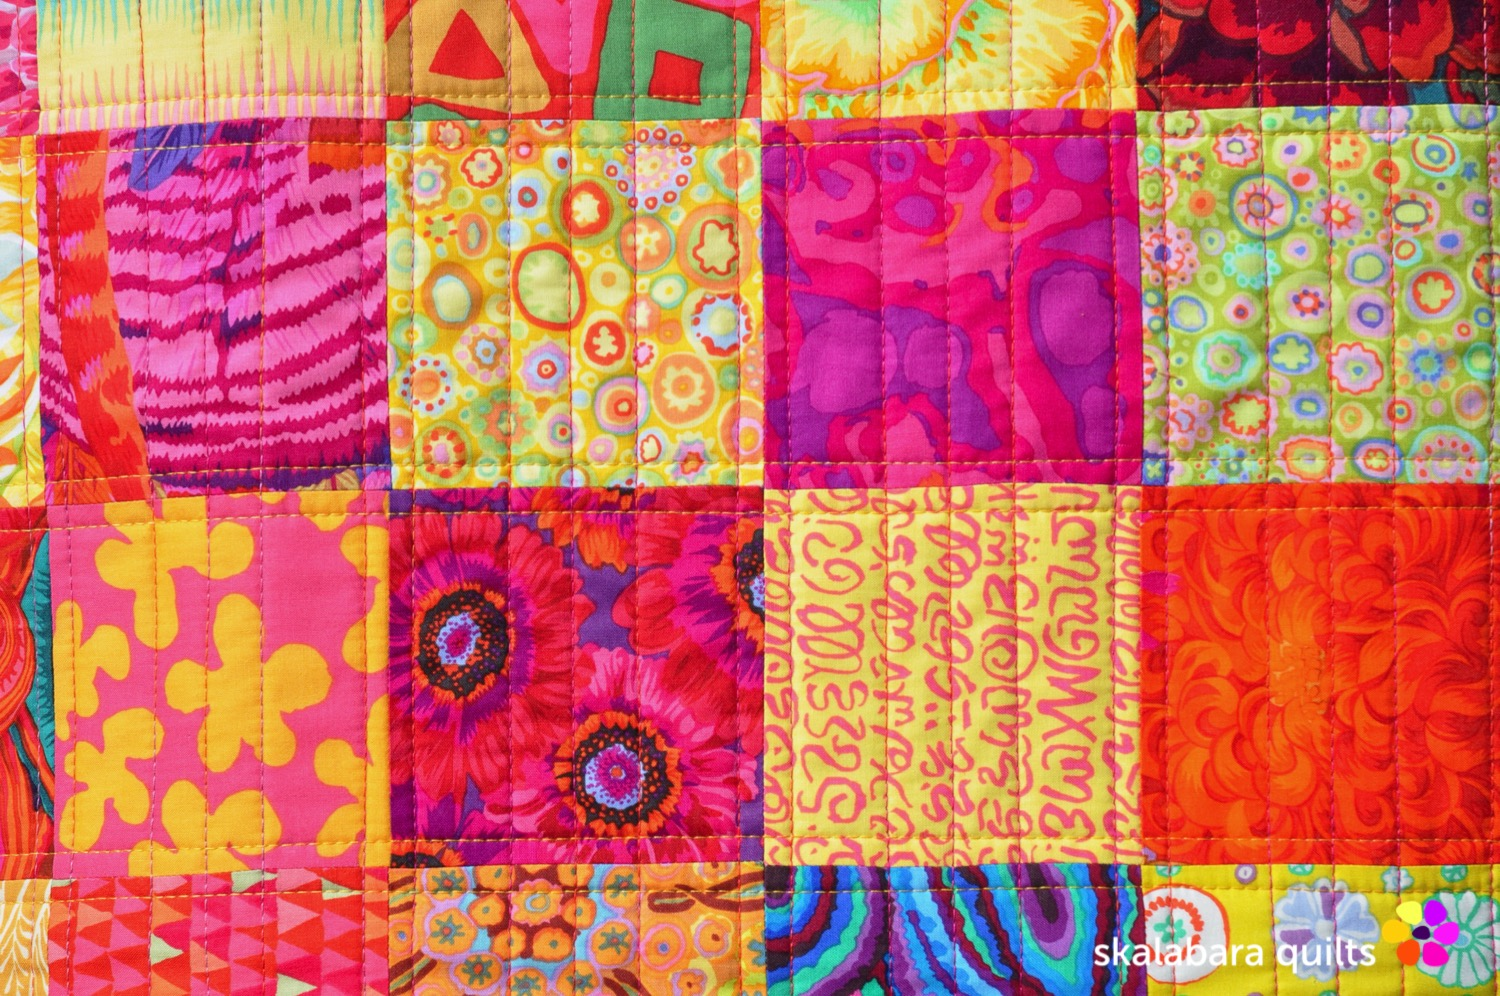 sewing machine cover detail 2 - skalabara quilts